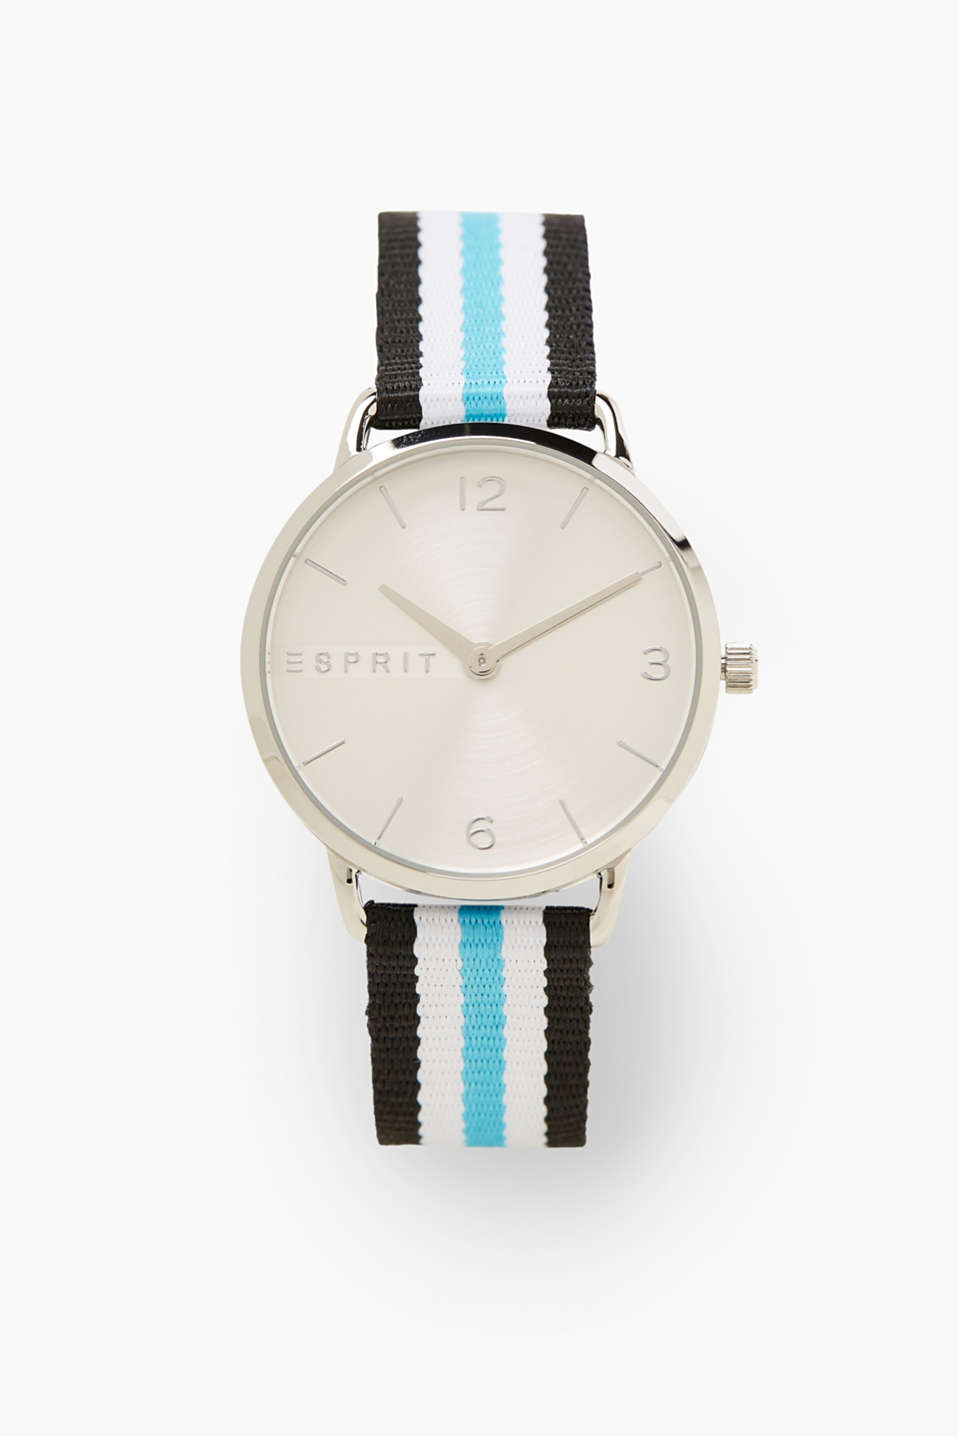 Esprit - Light stainless steel watch, striped strap